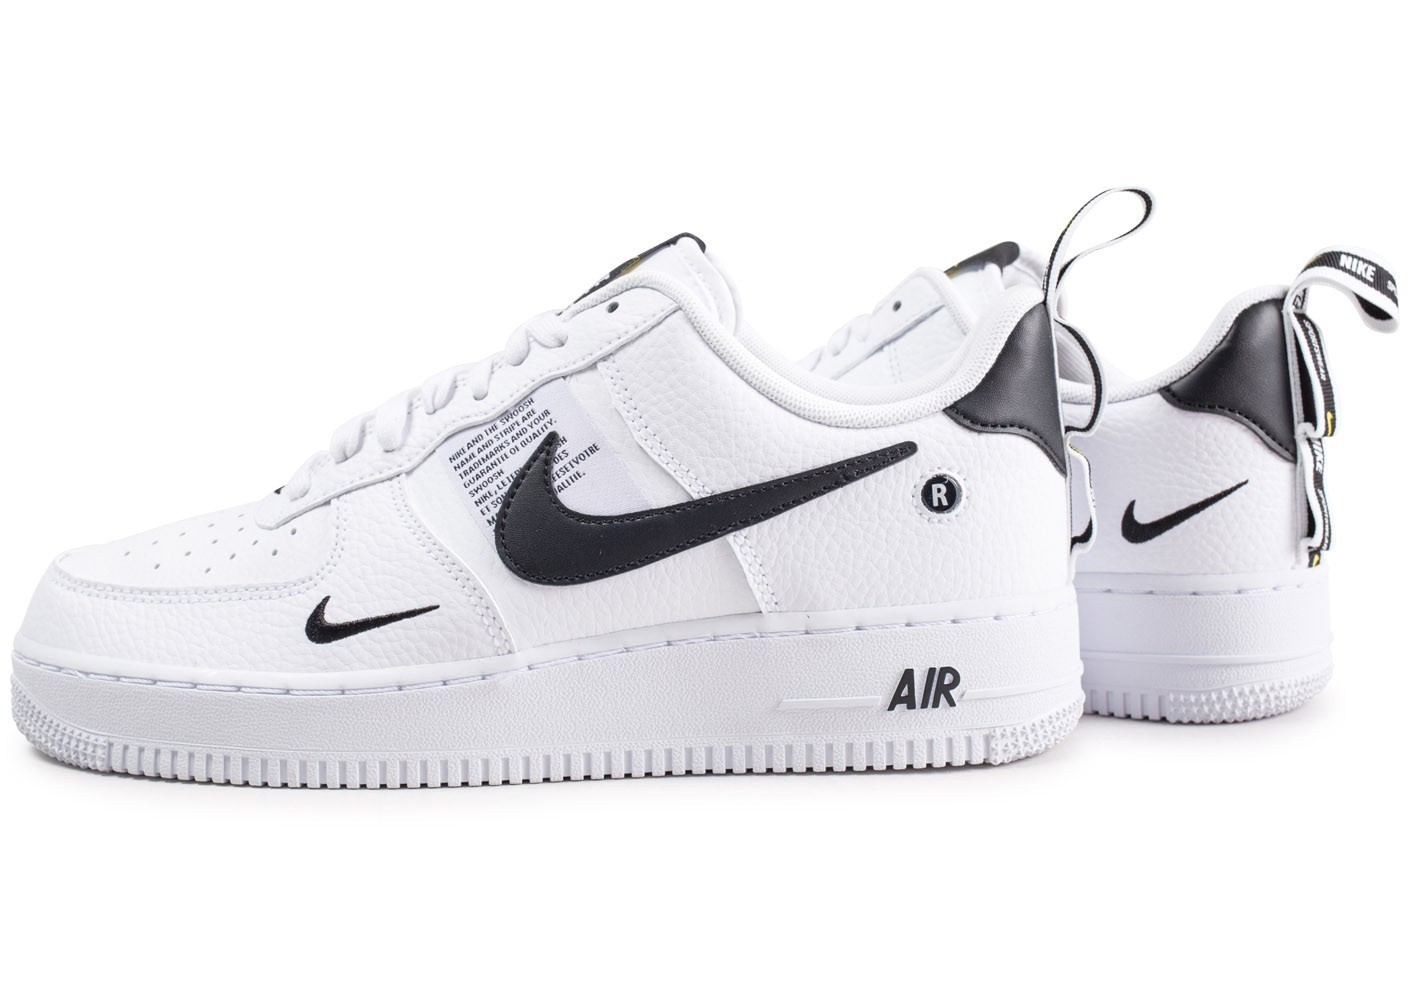 Soldes > nike air force one utility homme > en stock